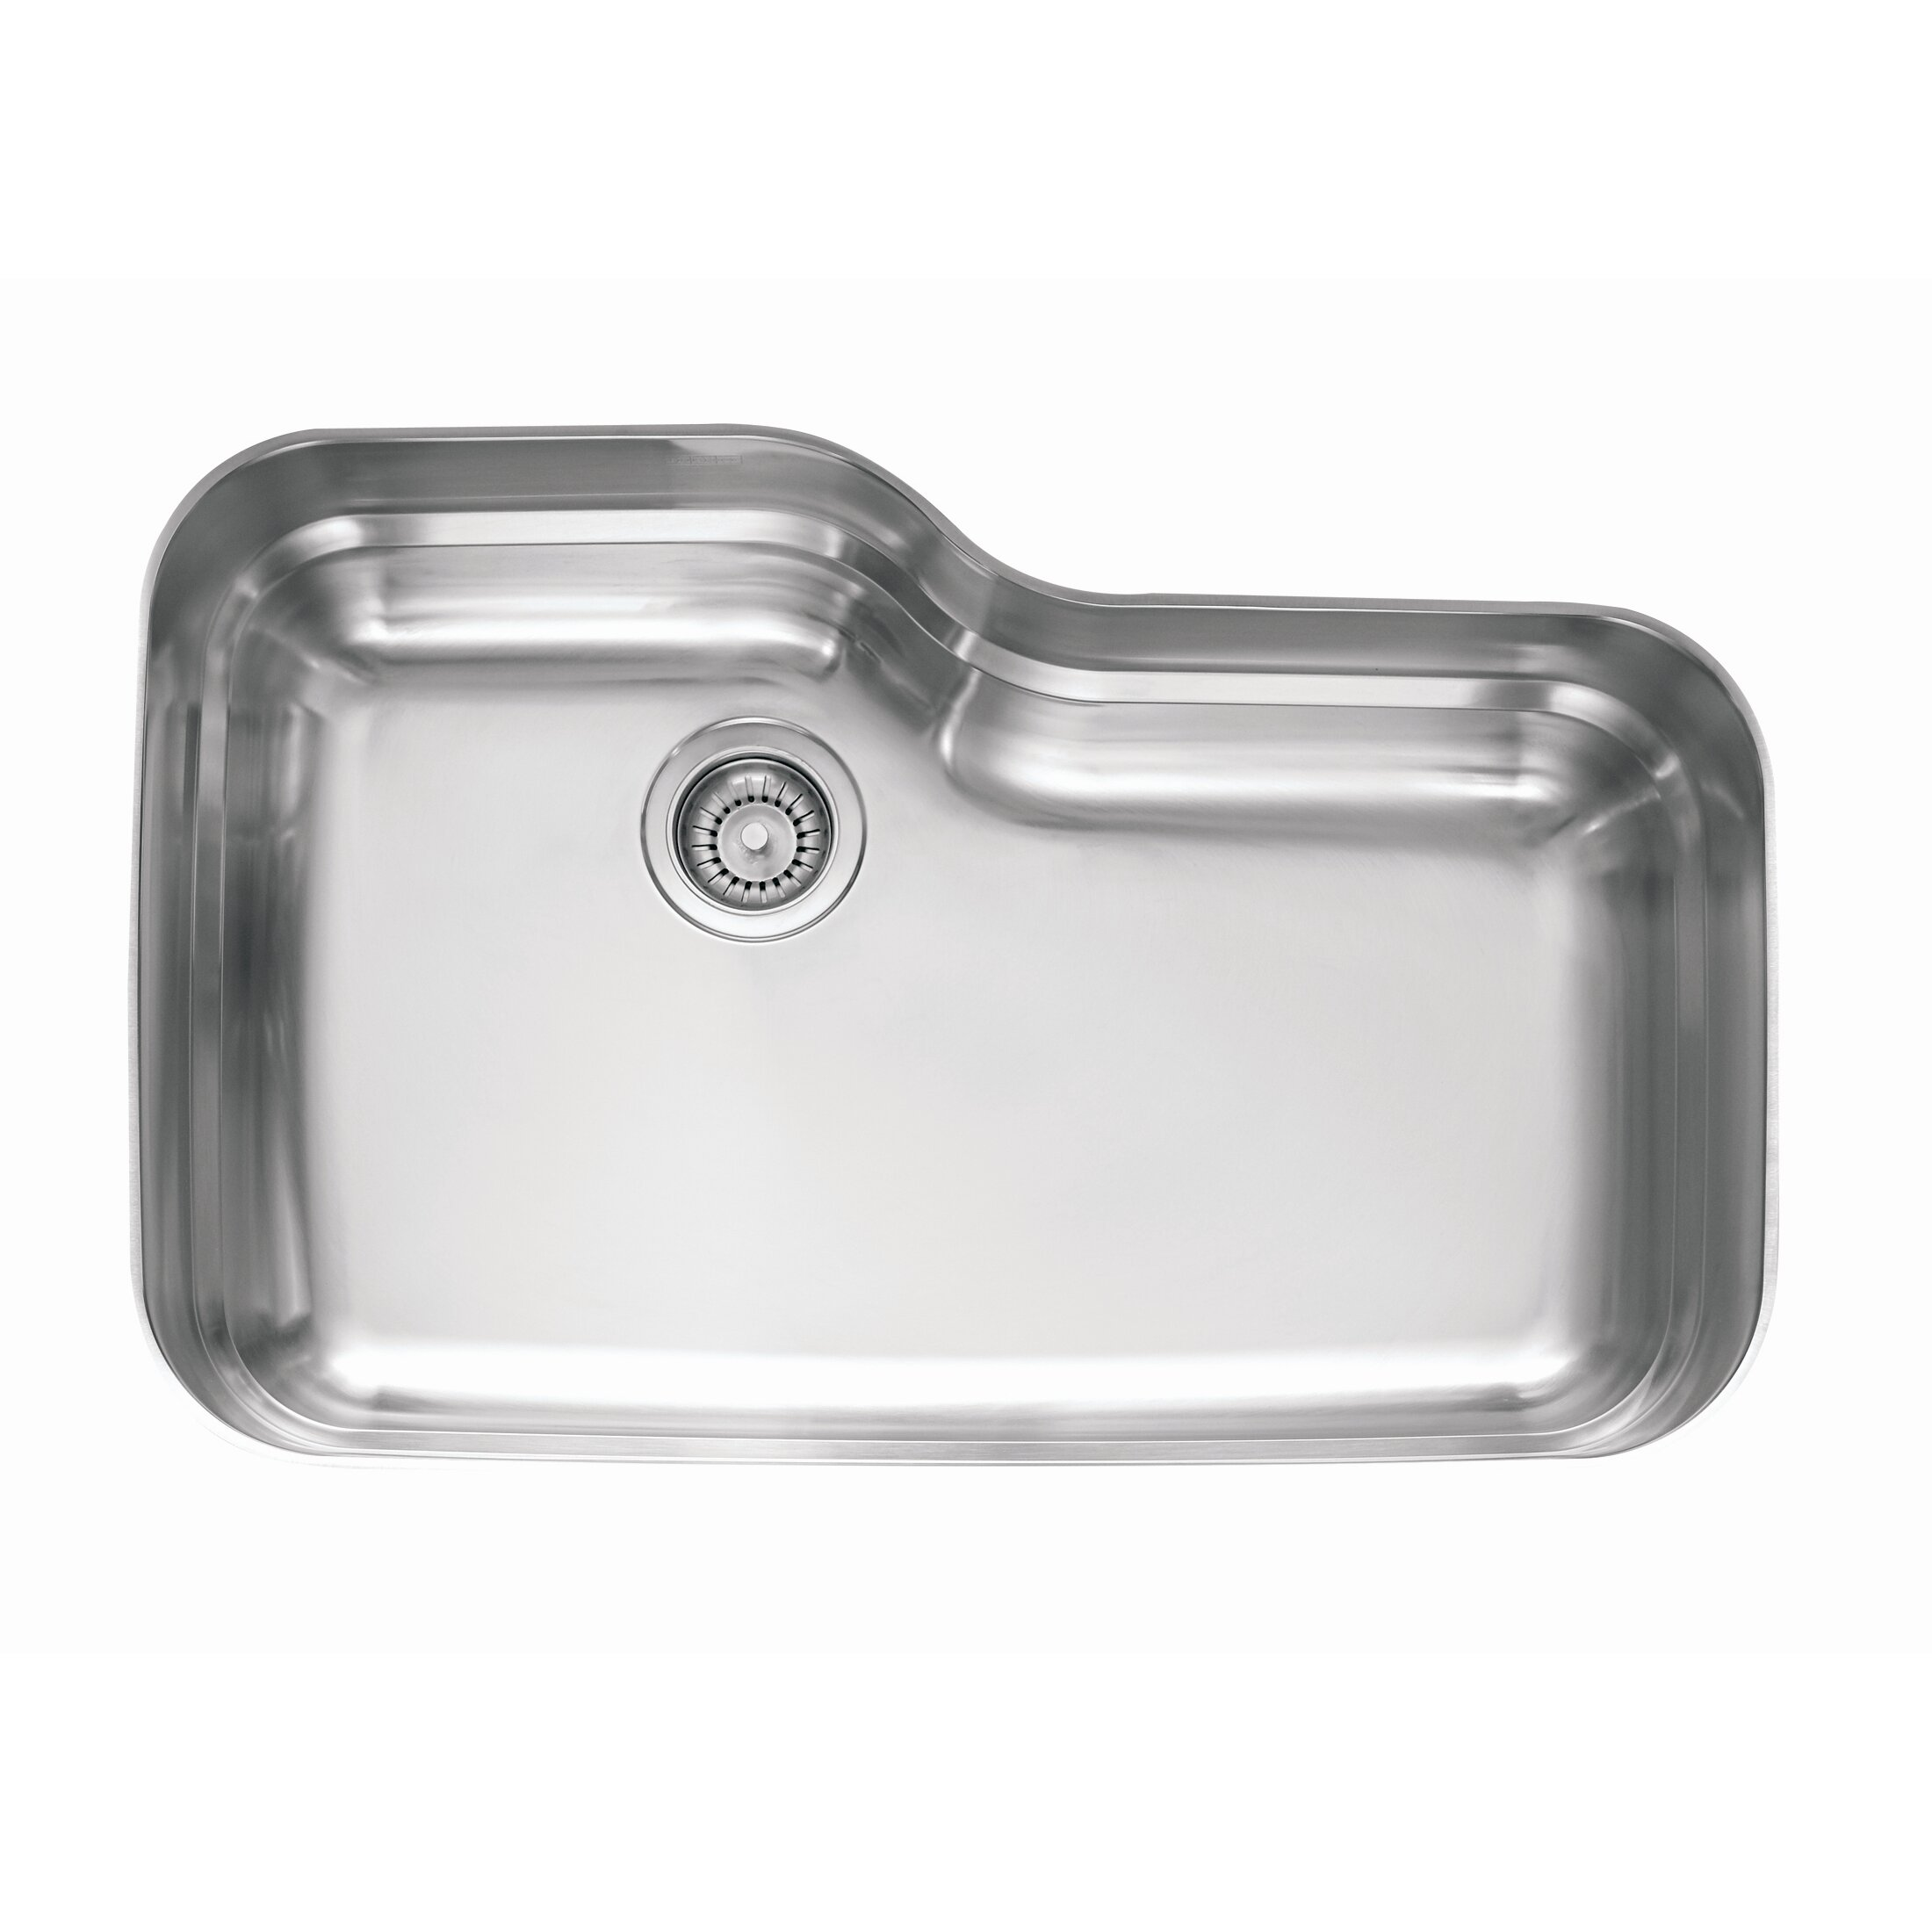 Franke Kitchen Sinks : Franke Orca 30.69